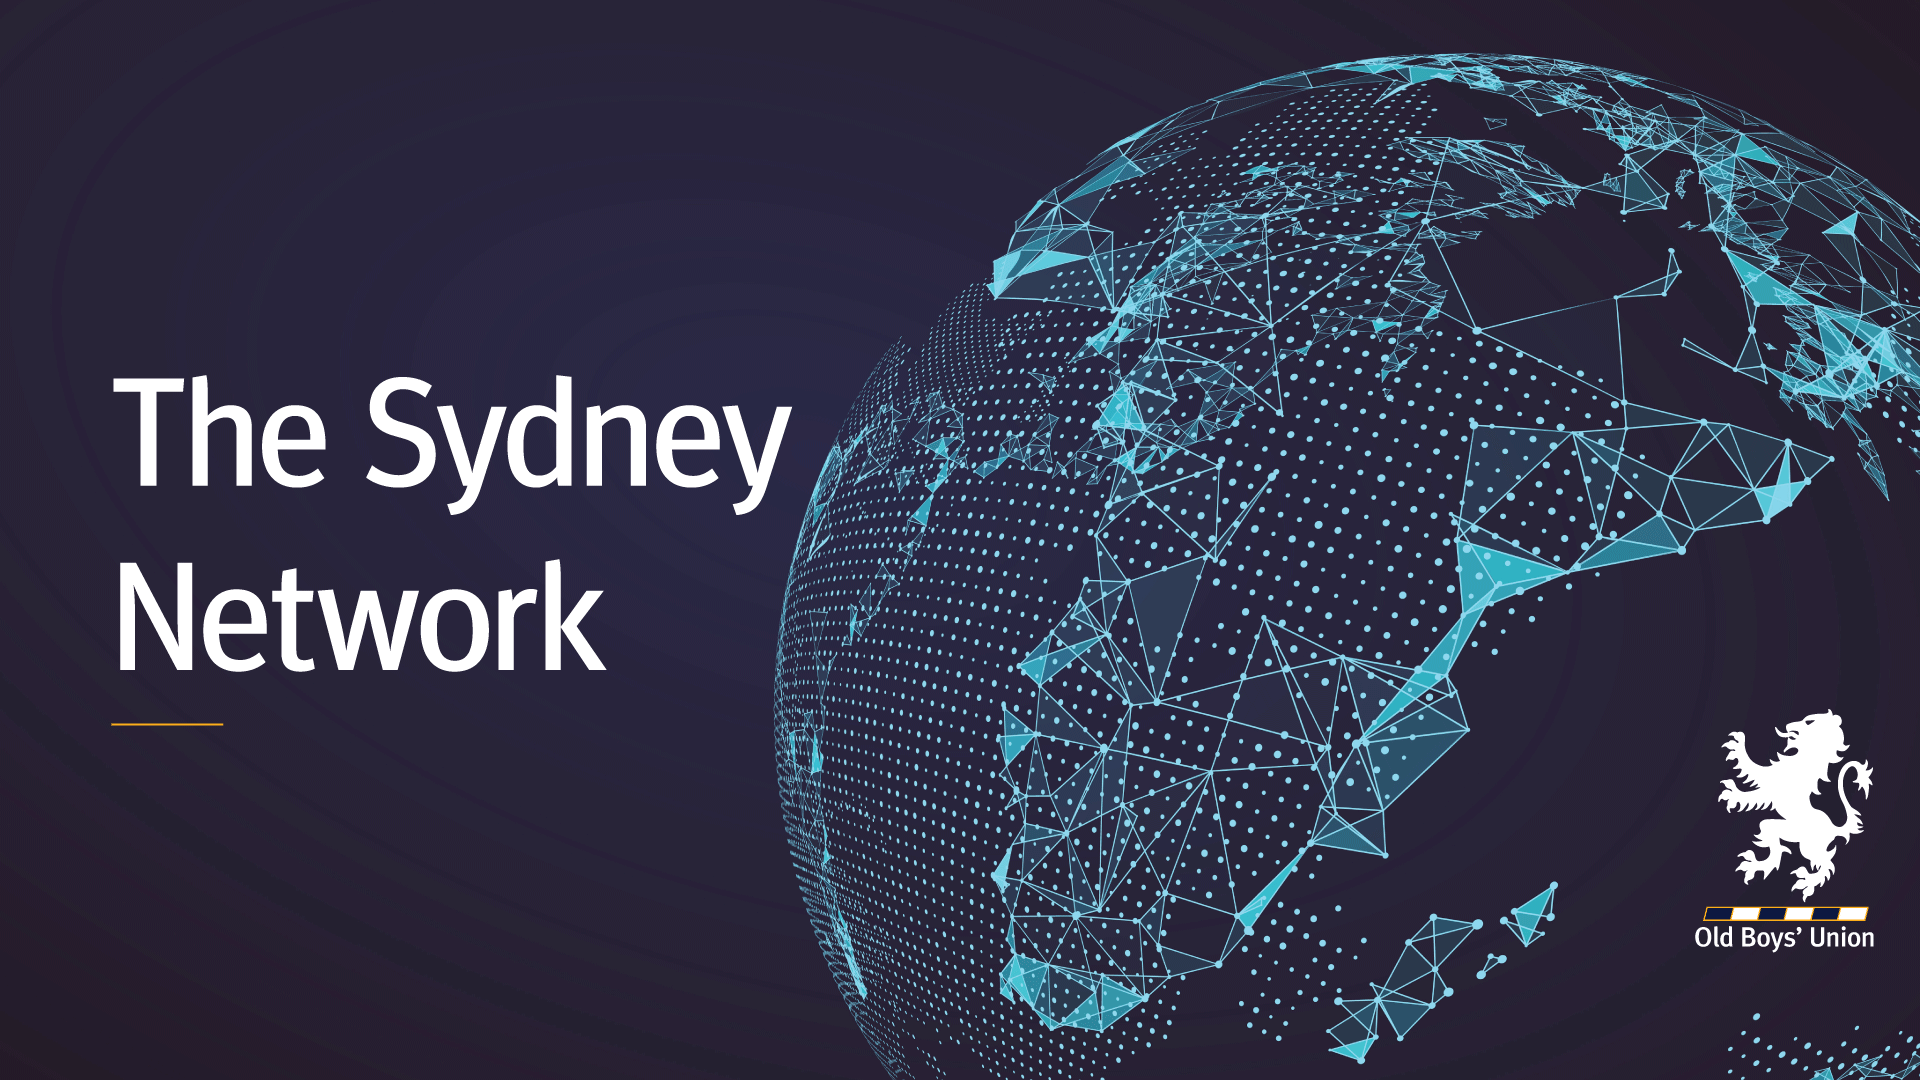 The Sydney Network